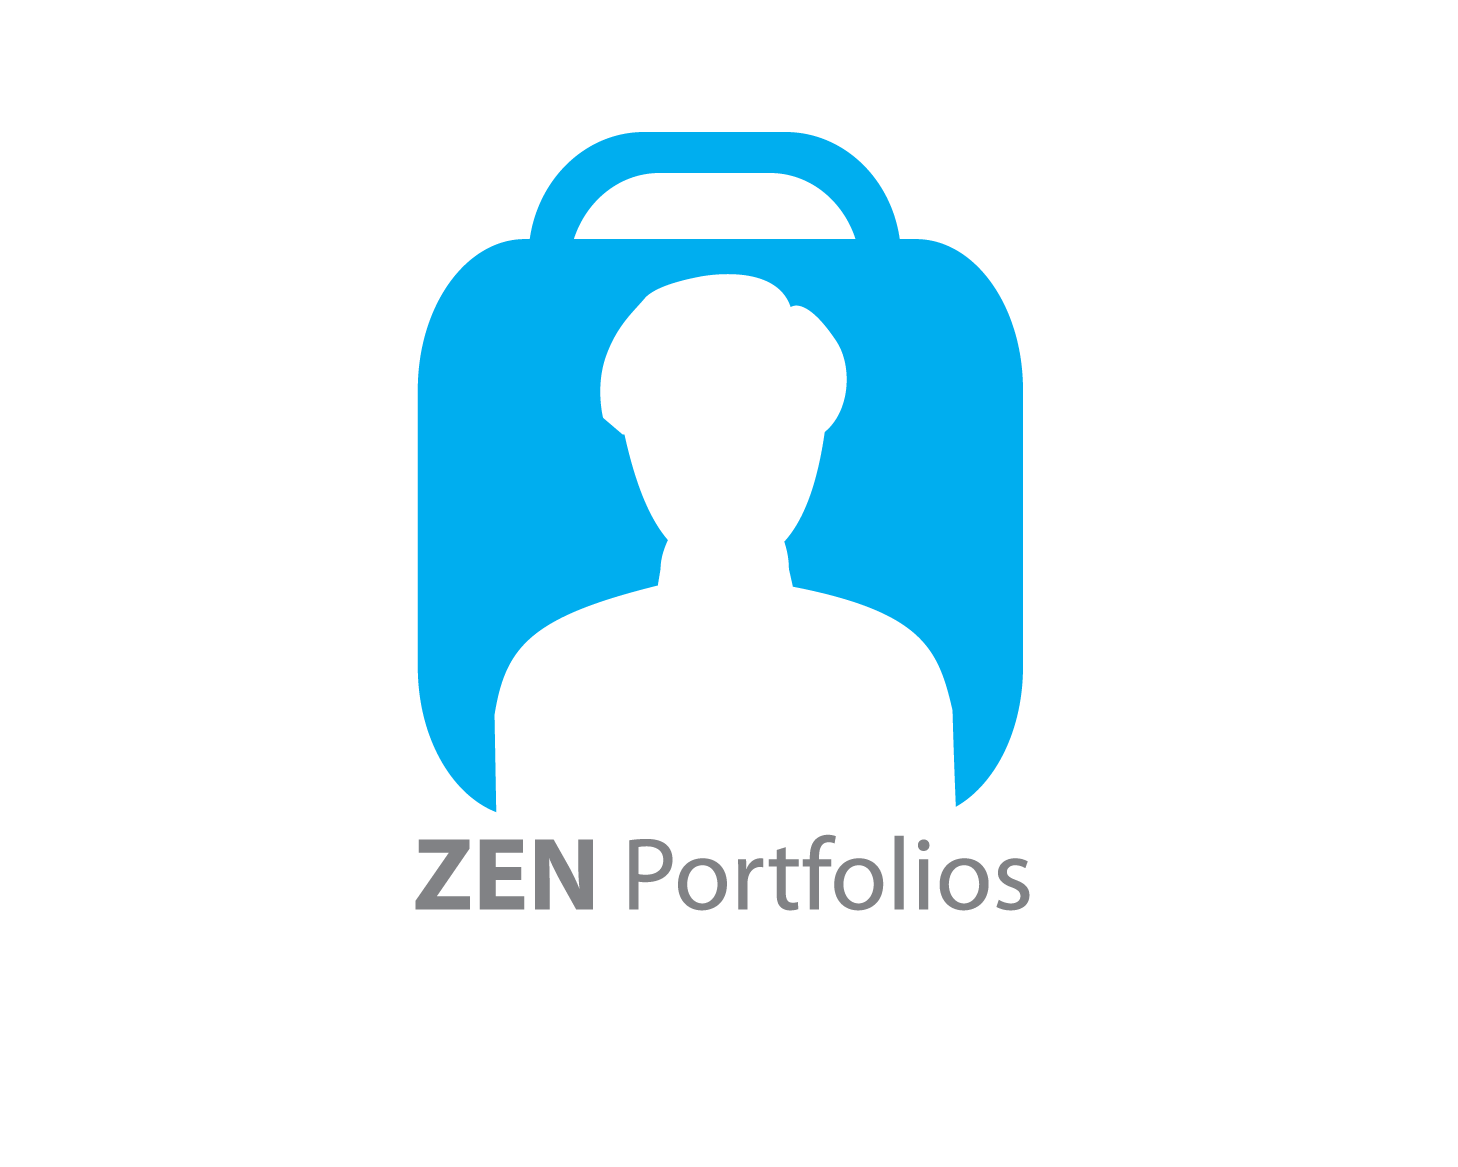 Logo Design by Roy Ferre - Entry No. 53 in the Logo Design Contest New Logo Design for ZEN Portfolios.